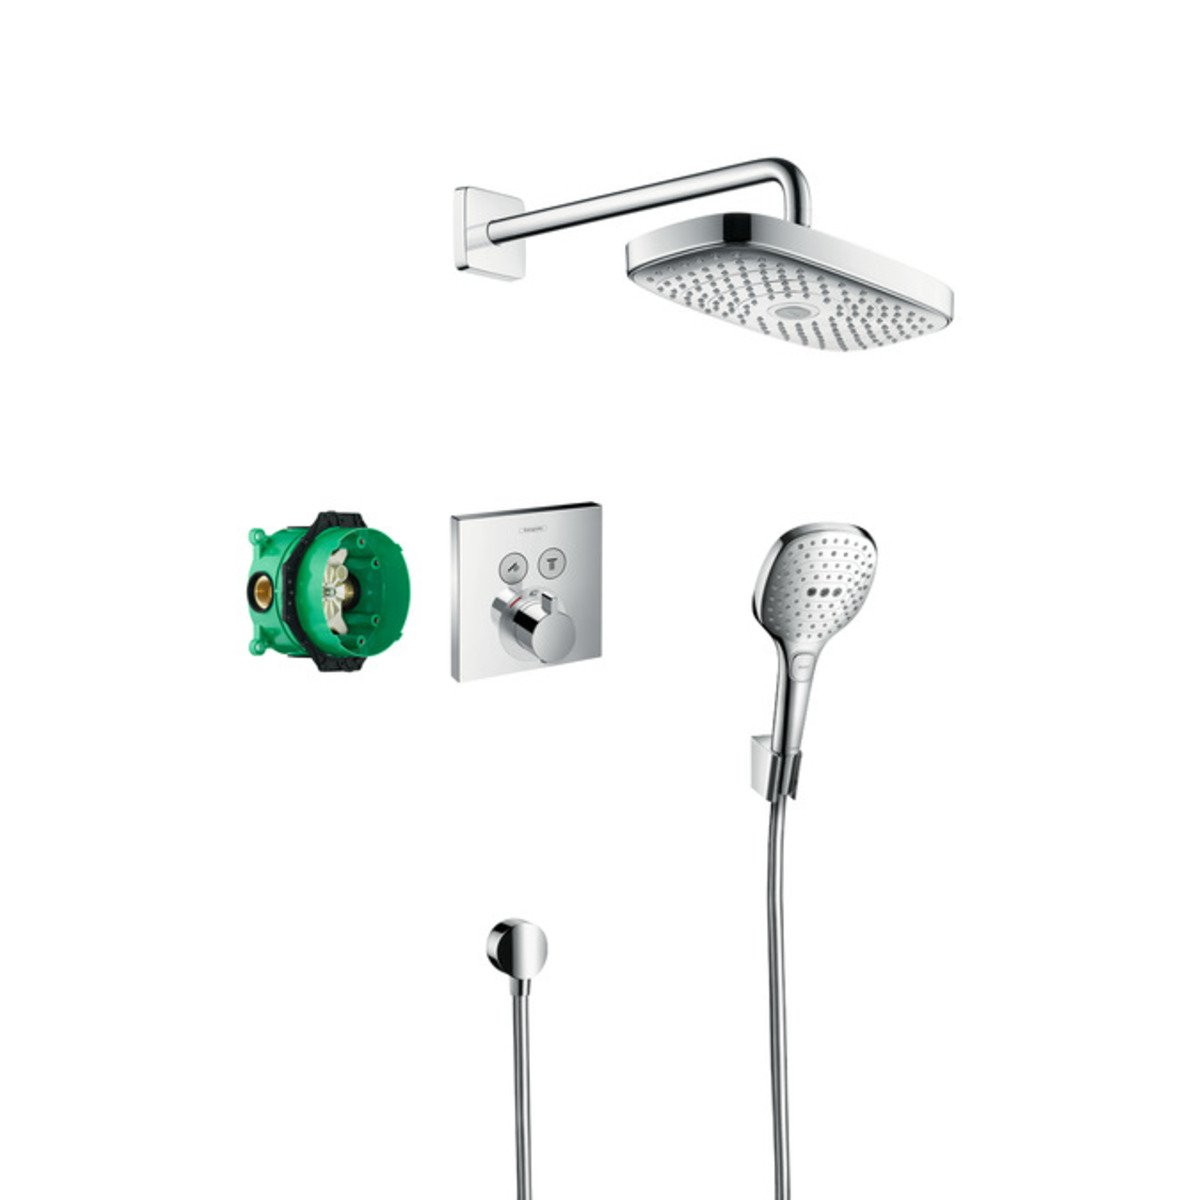 hansgrohe raindance select s showerselect s showerset compleet chroom 27296000. Black Bedroom Furniture Sets. Home Design Ideas